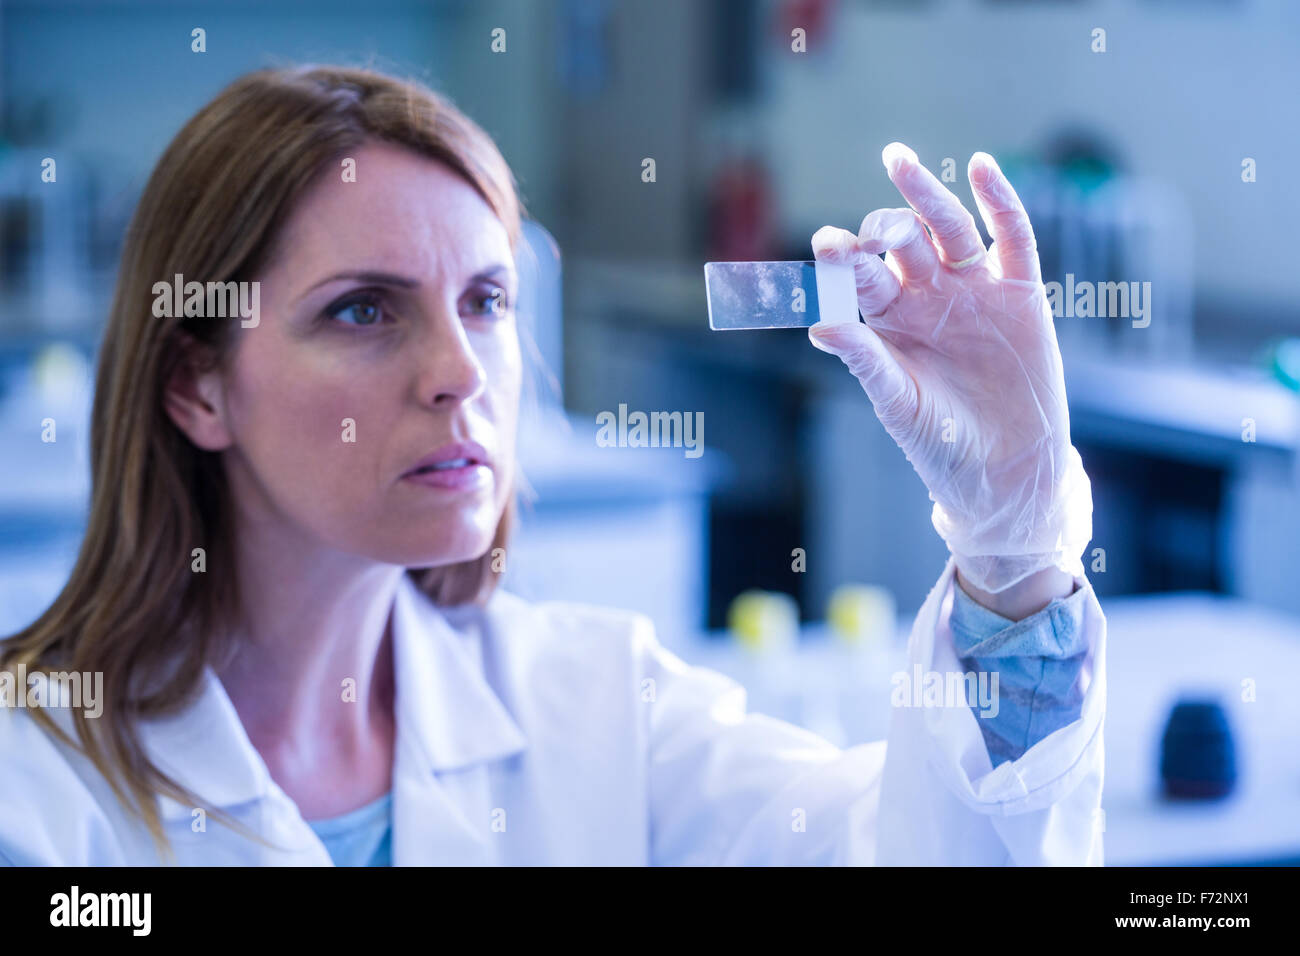 Scientist looking at test slide in the lab - Stock Image